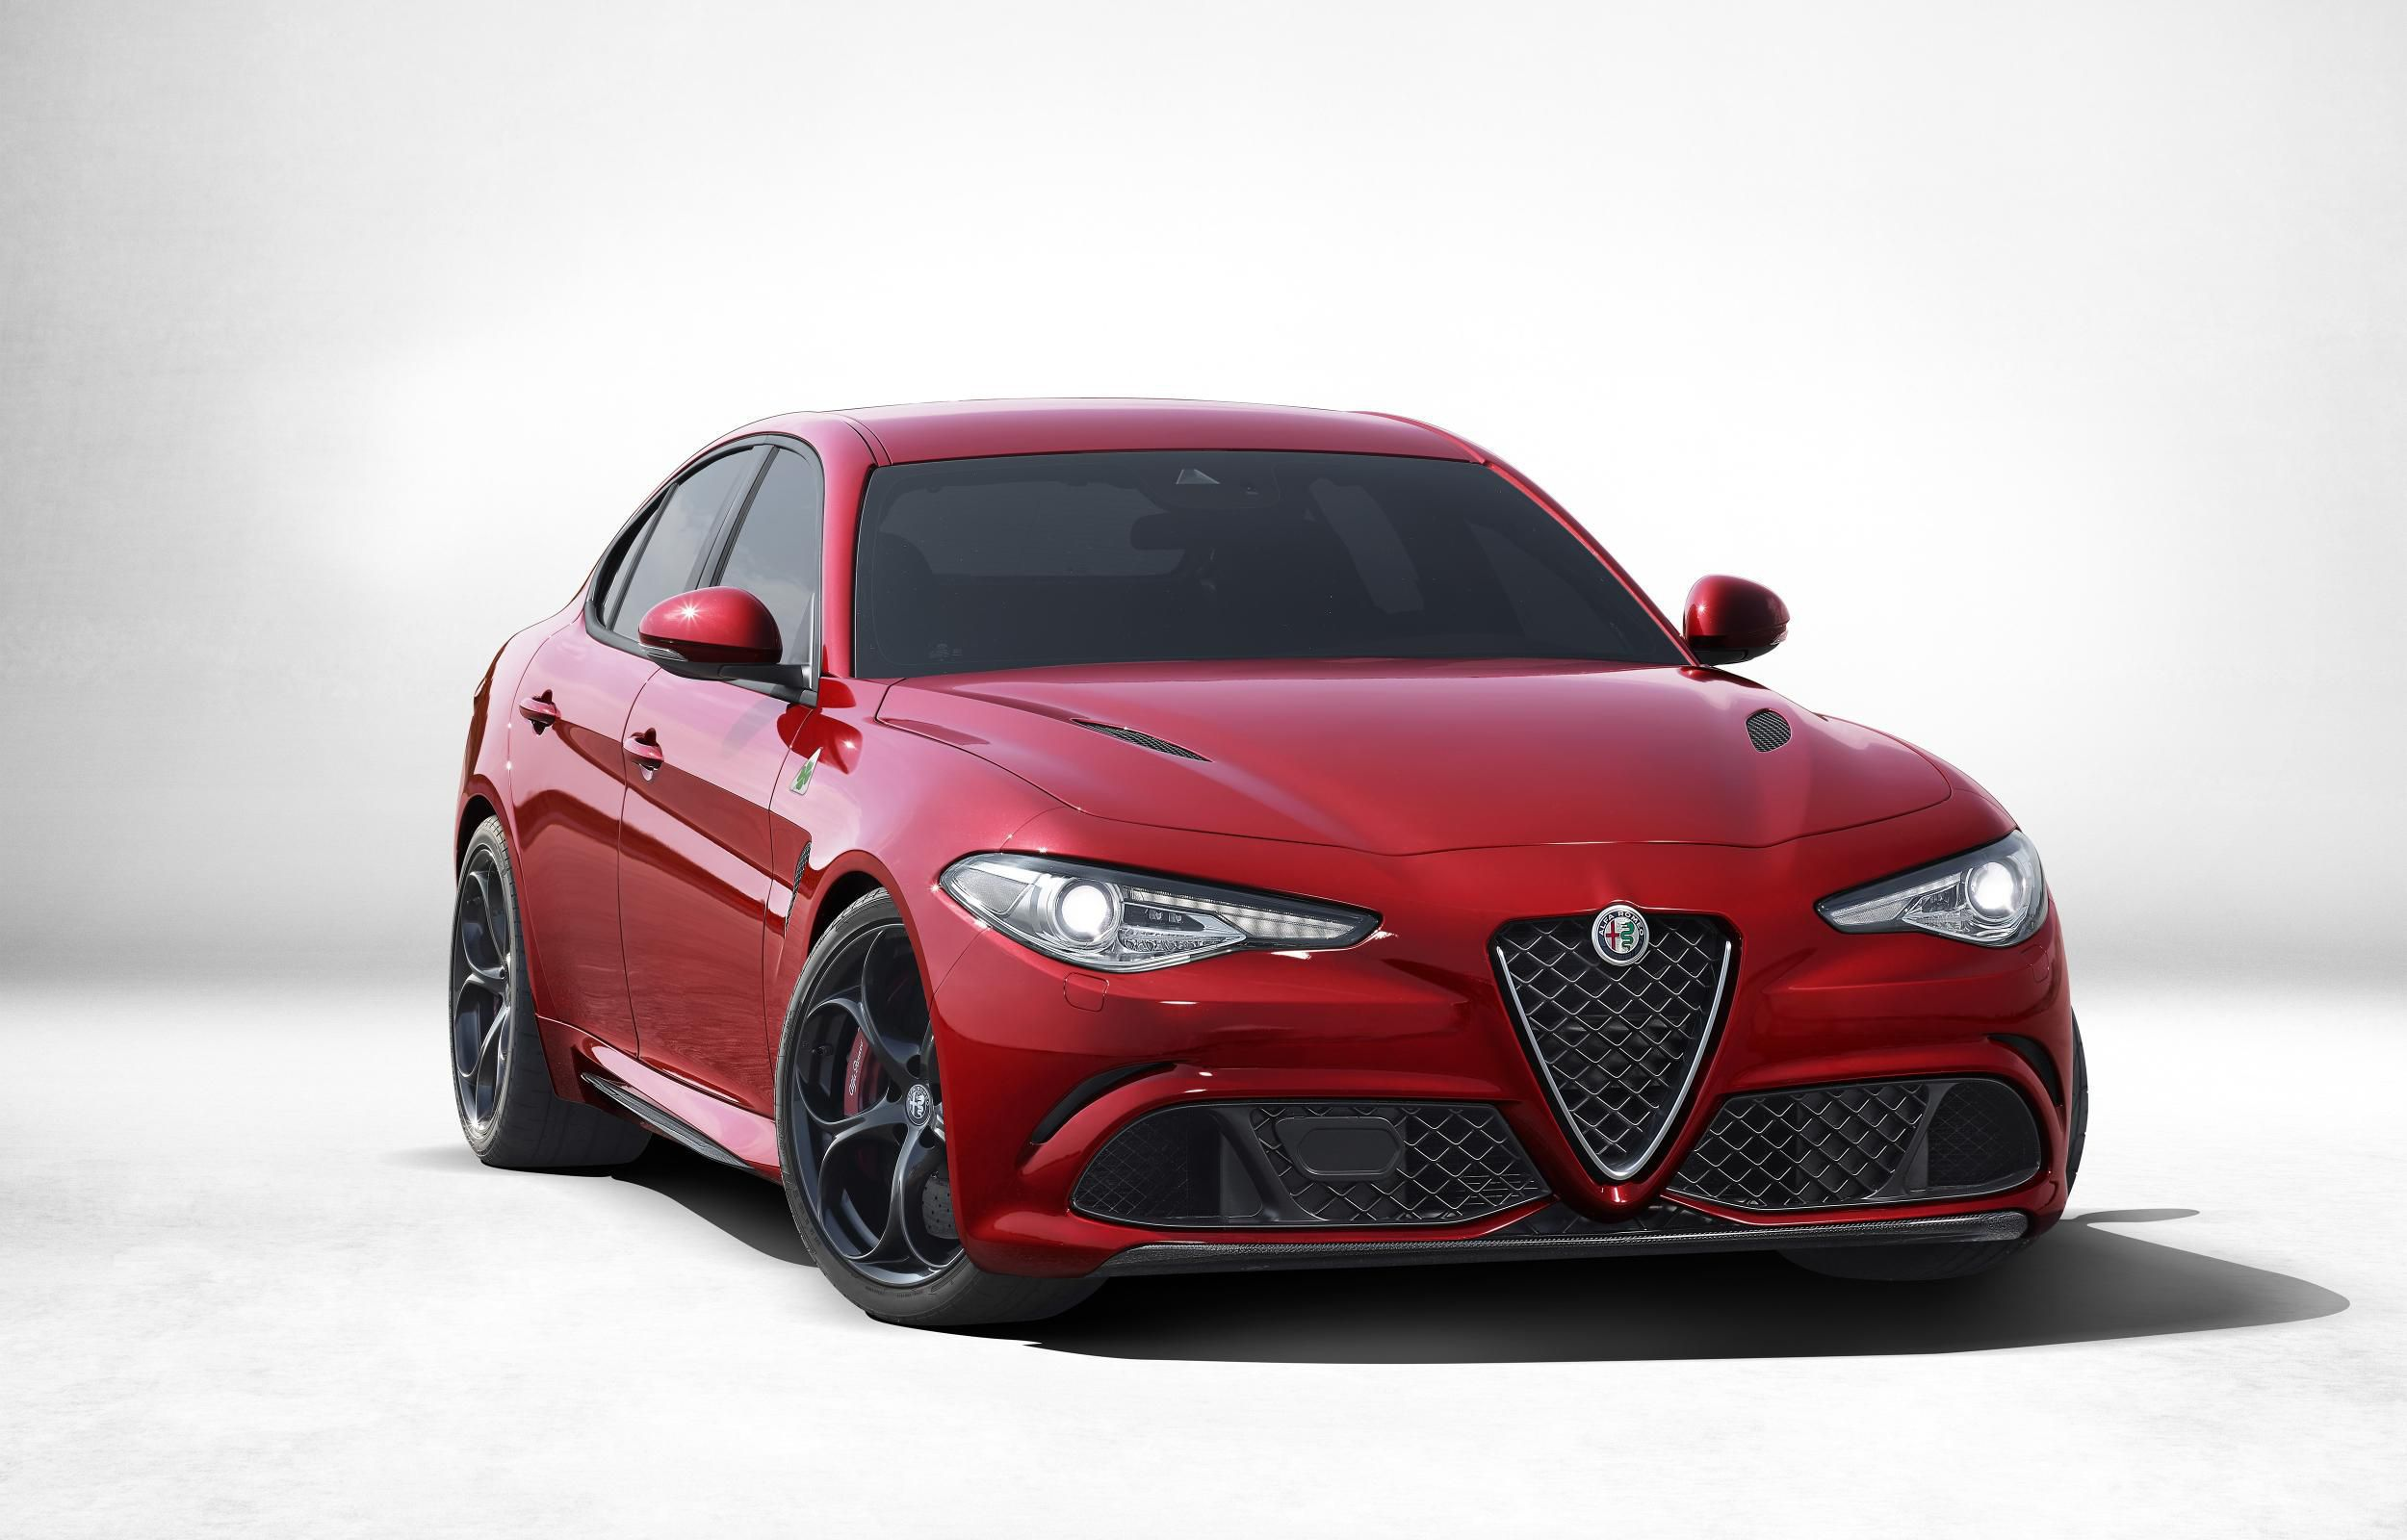 Alfa Romeo Giulia Wallpapers